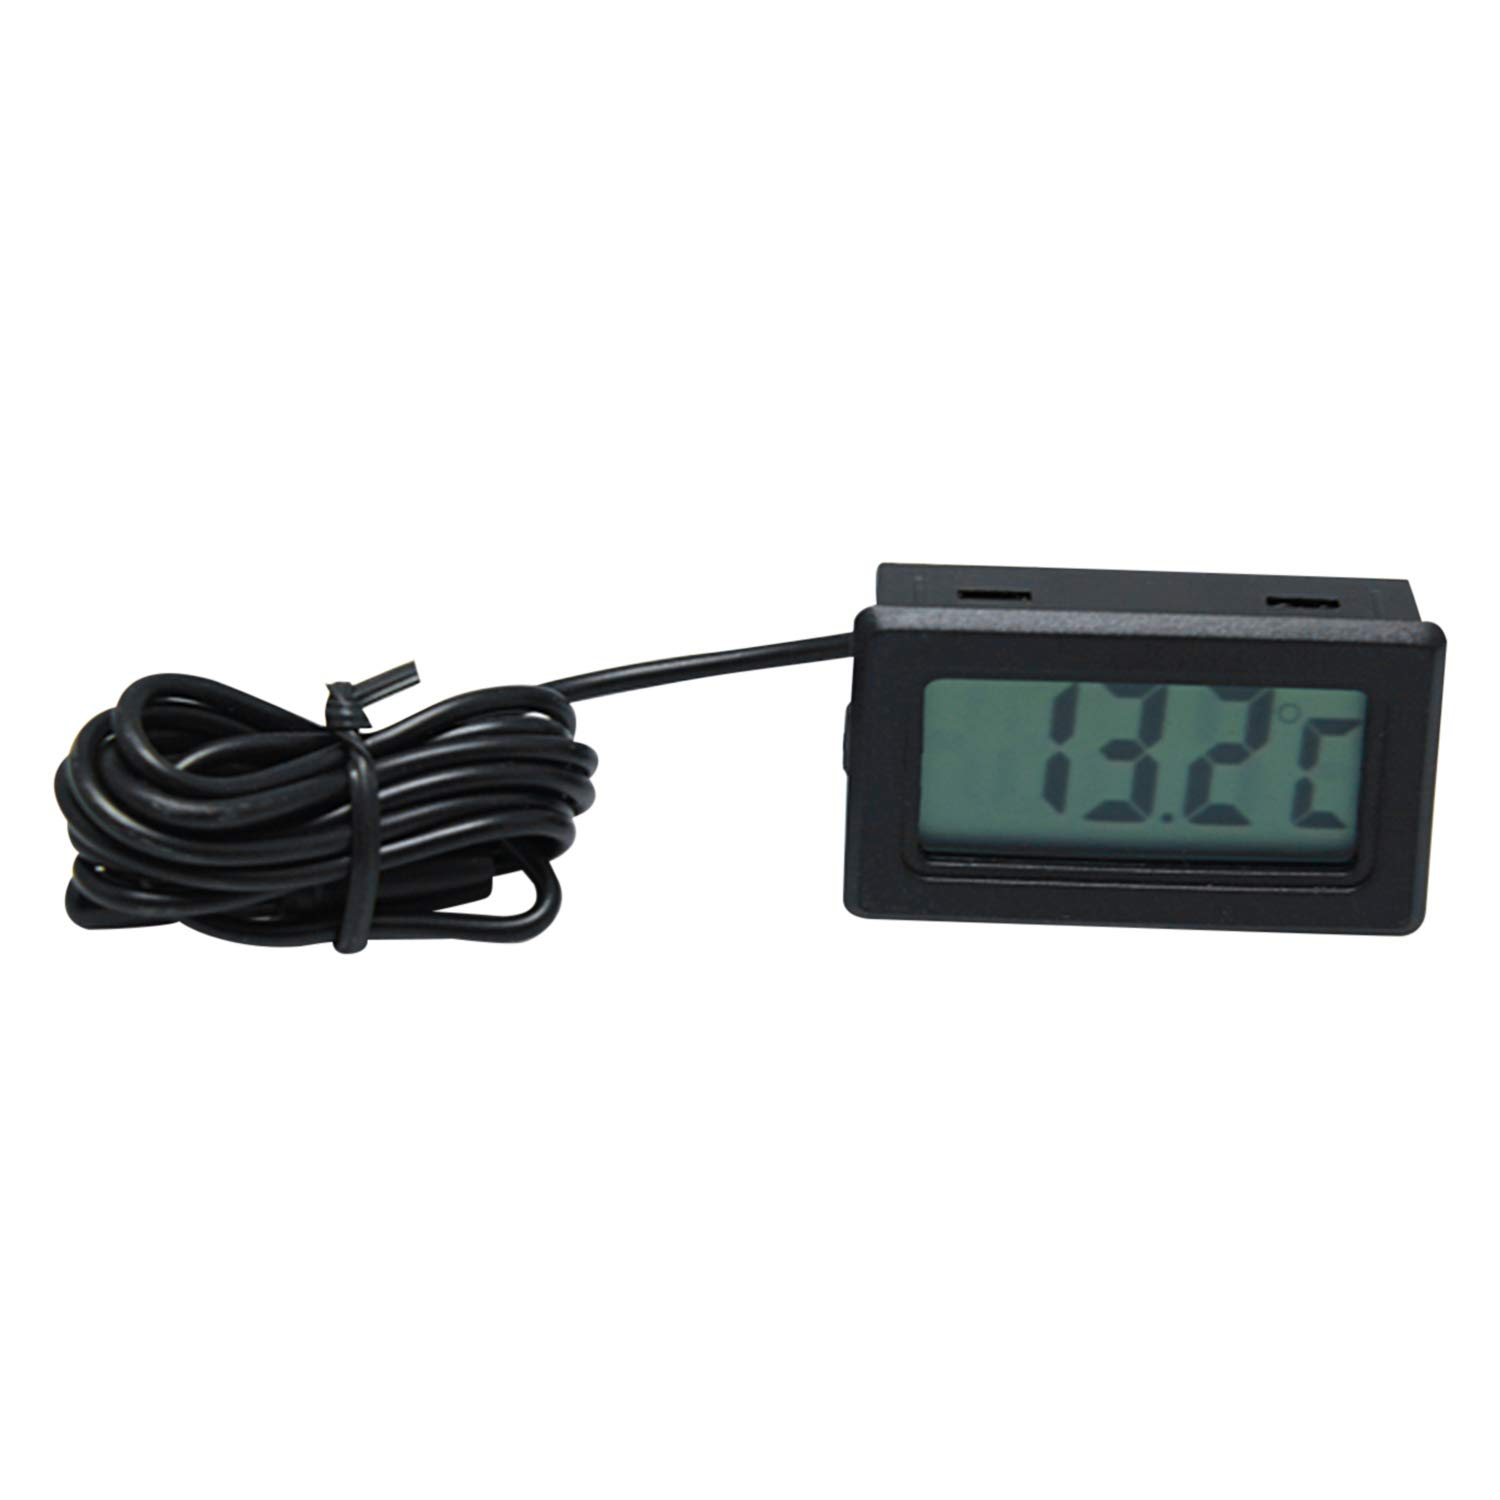 X-10 Digital Embedded thermometer electronic temperature Tester meter Instruments Gauge with probe Aquarium Refrigerator